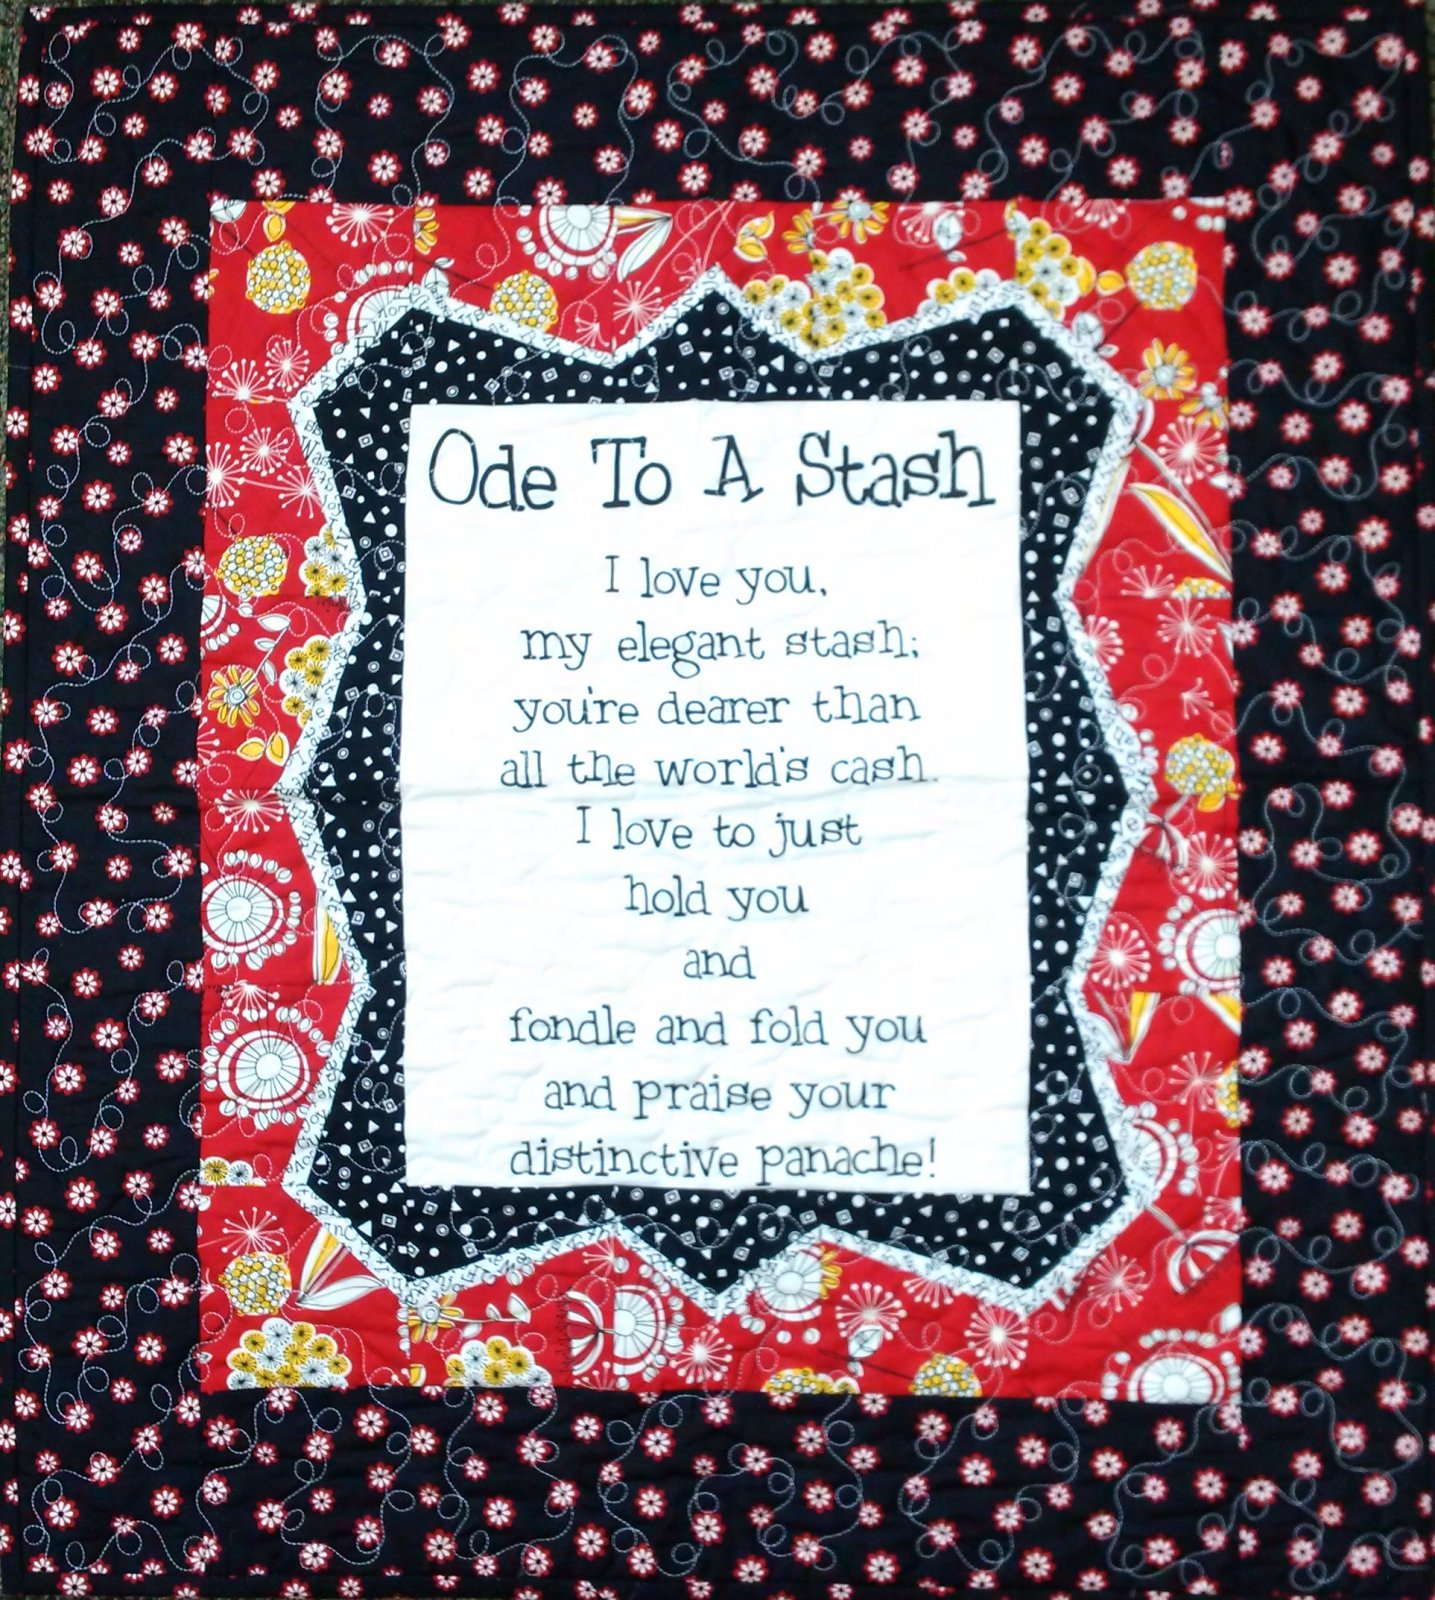 Ode To A Stash Quilt - Black and Red